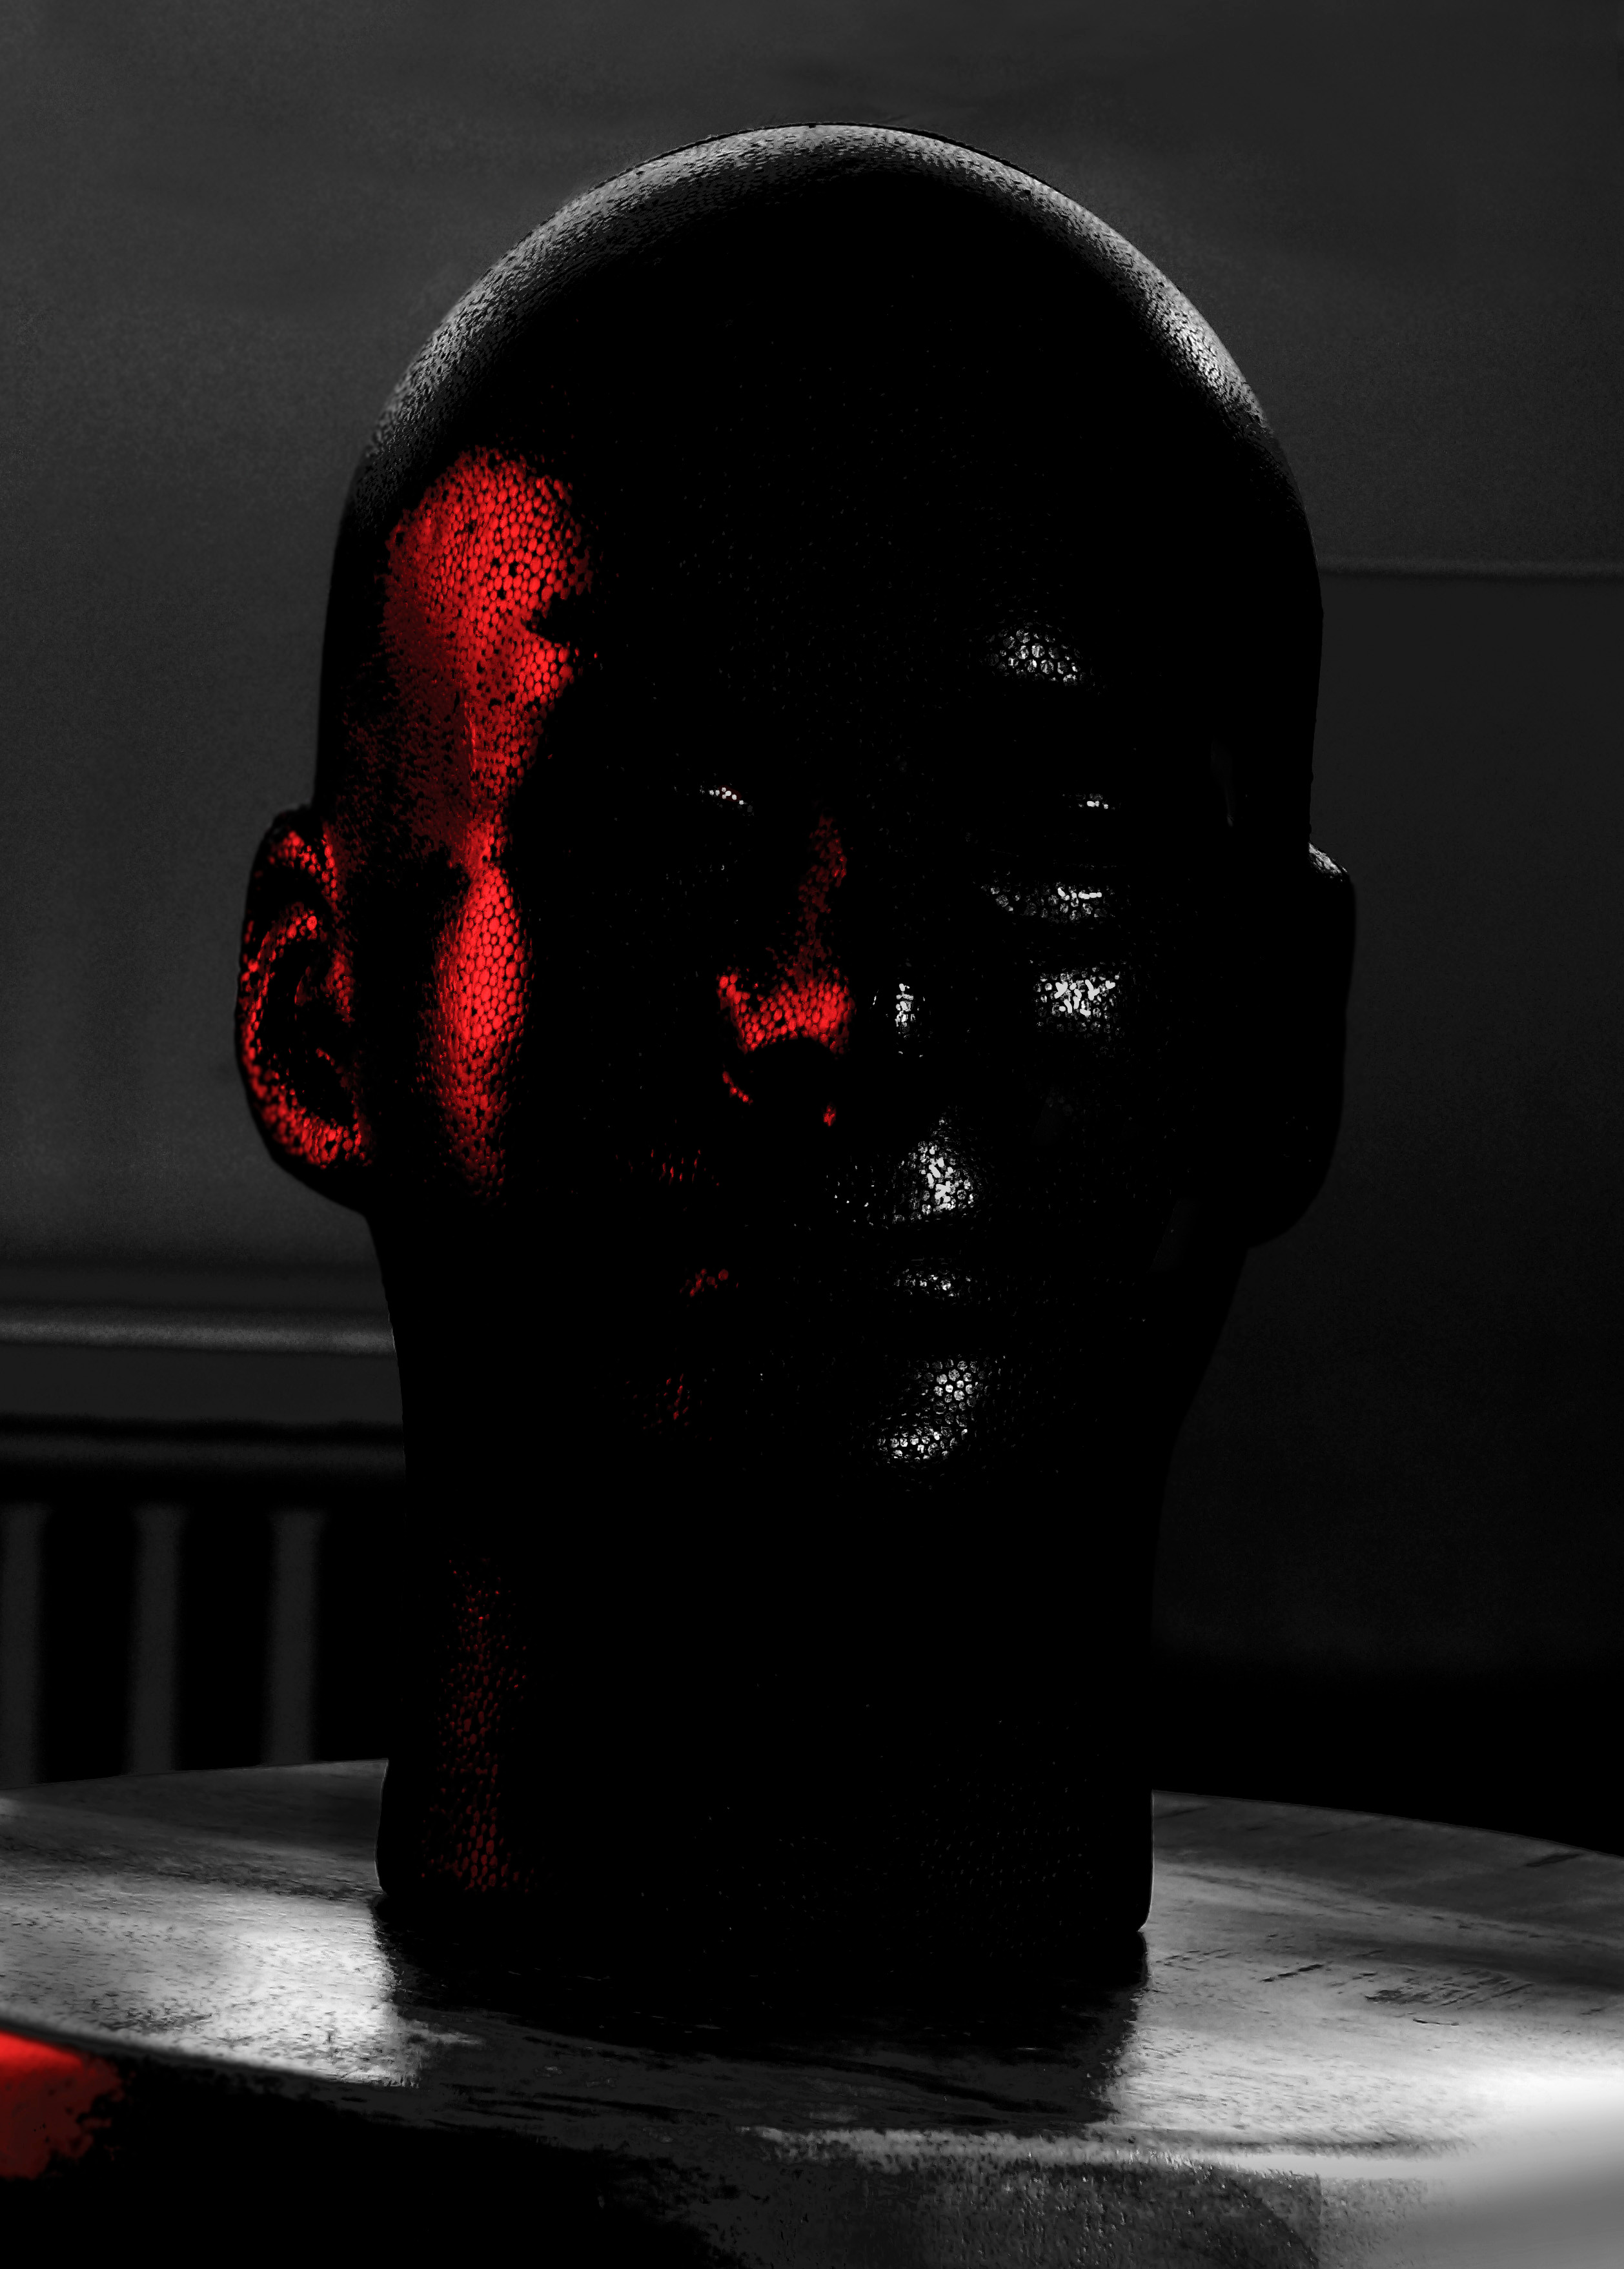 Photograph of a the manikin head demonstrating the  placement and properties of  of the highlight and the reflected light. Created by Vince Mancuso